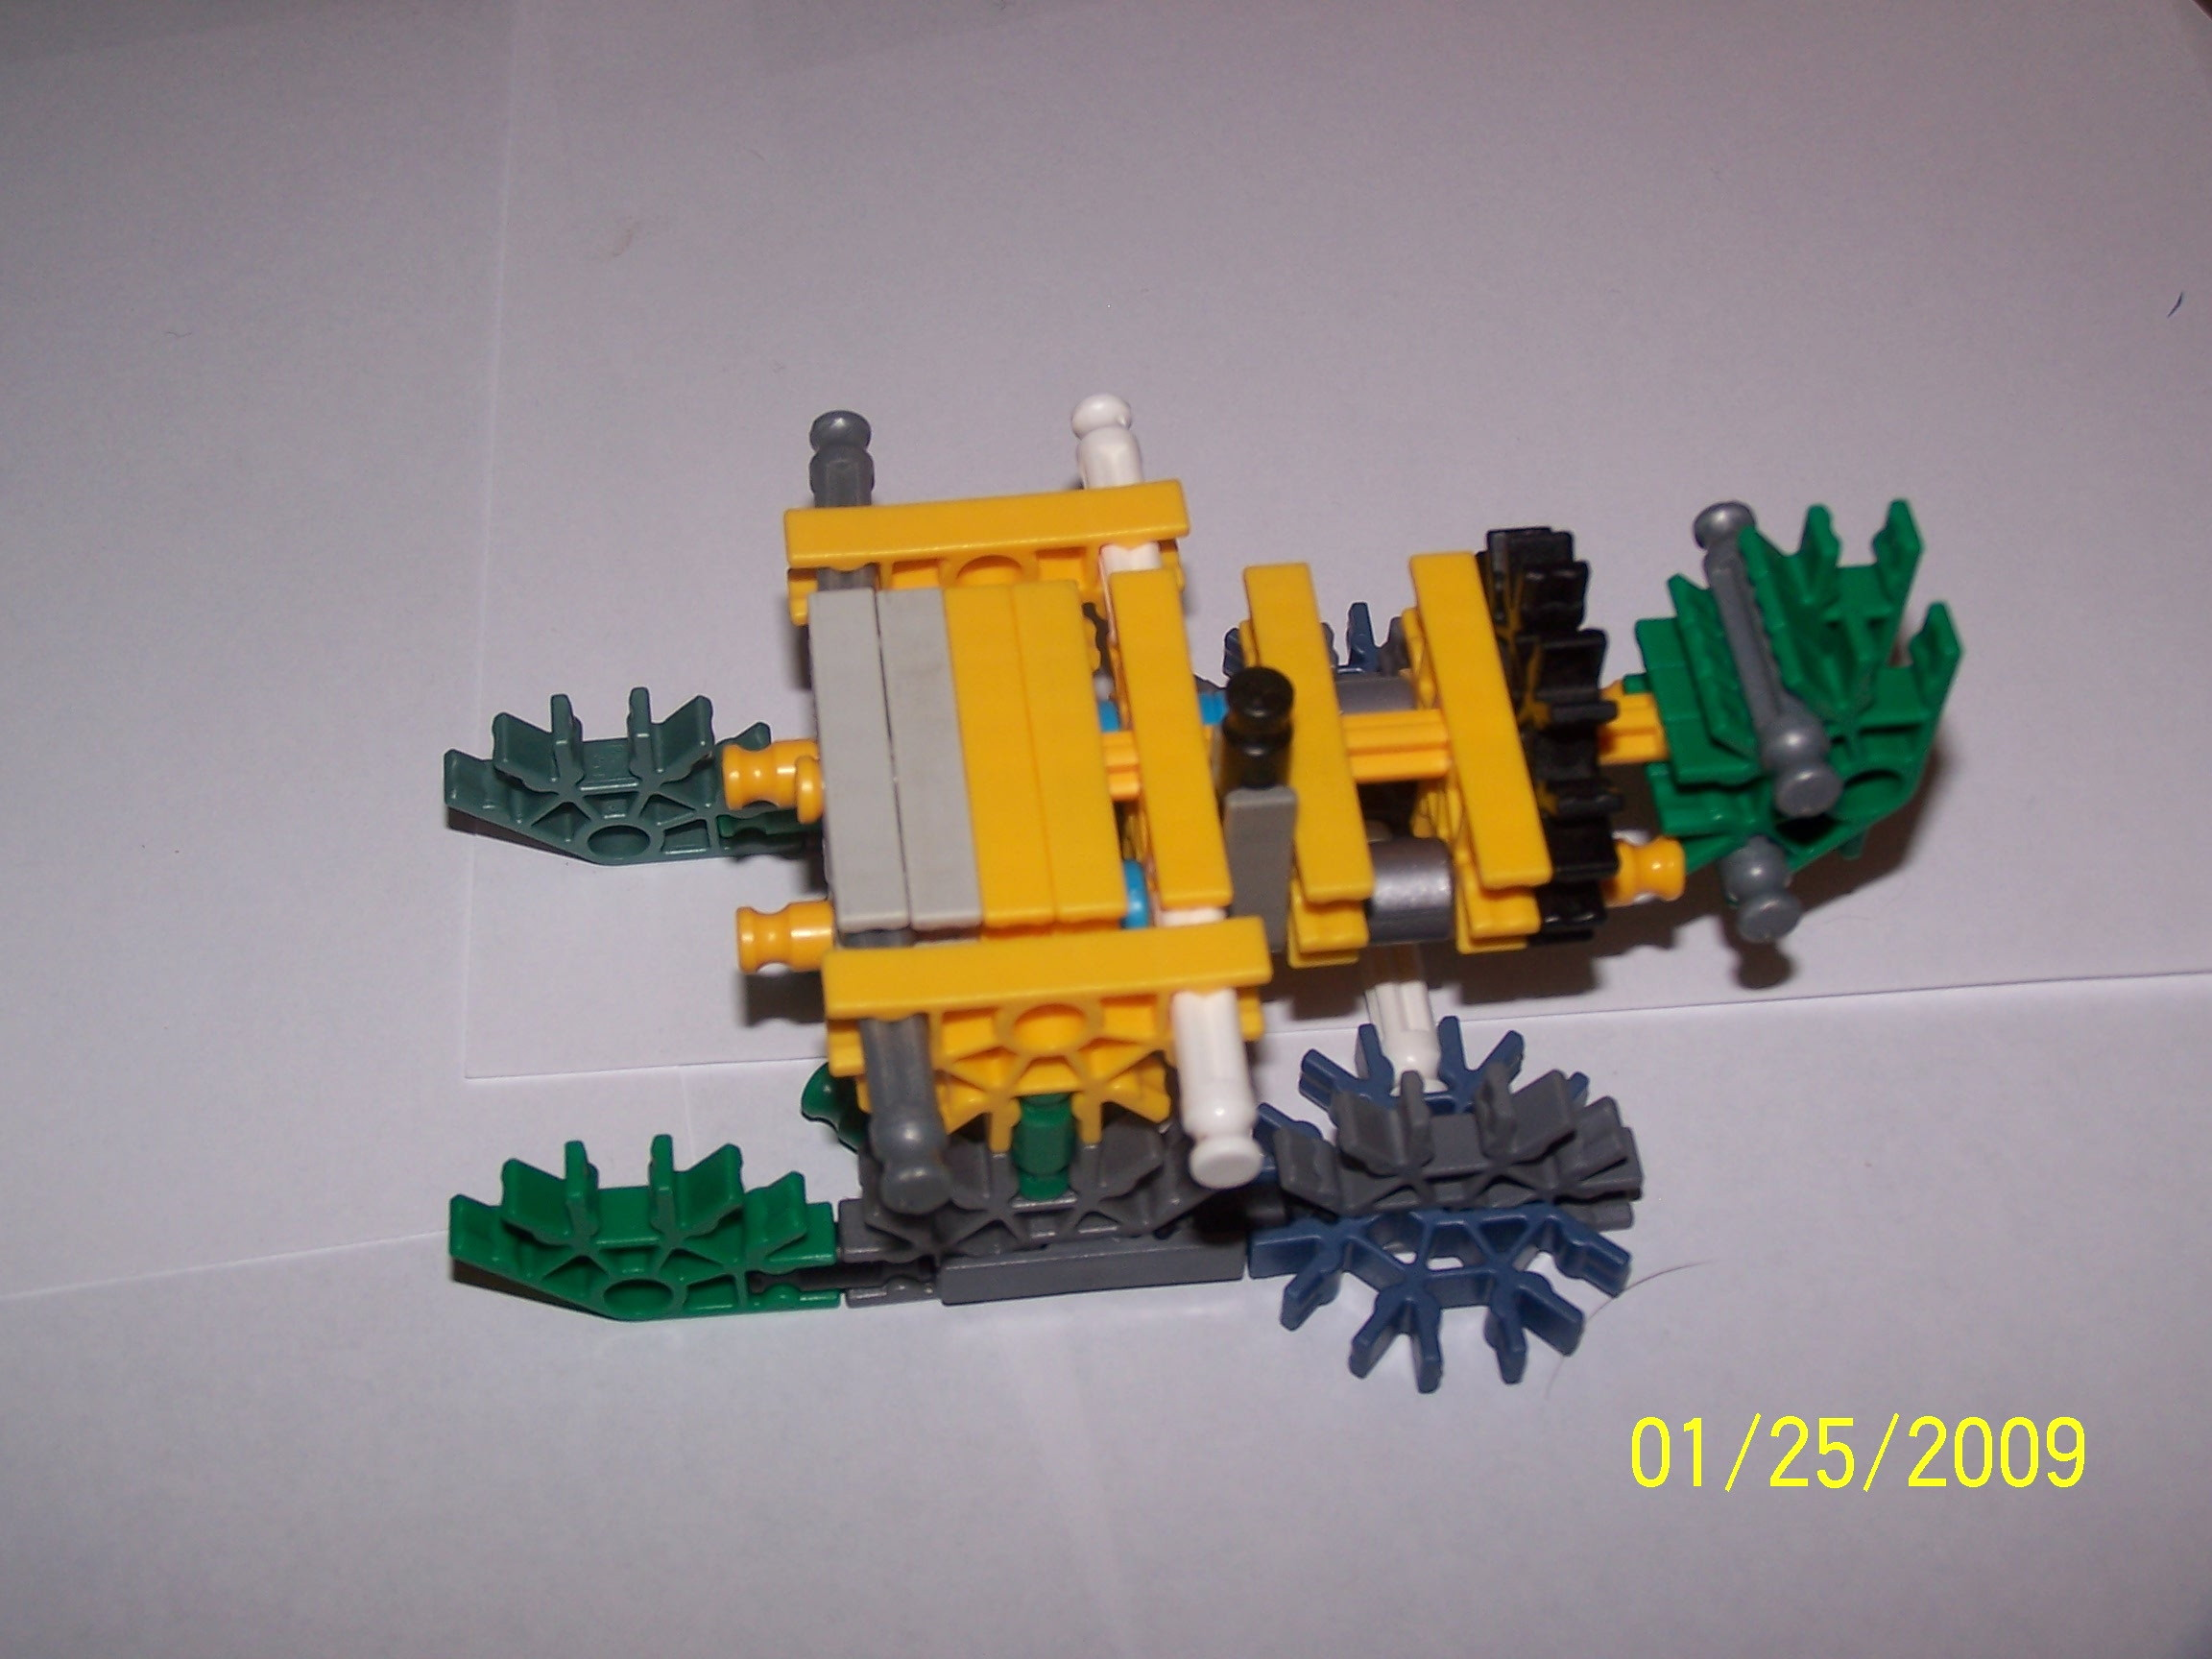 Knex Cannon with a stability base